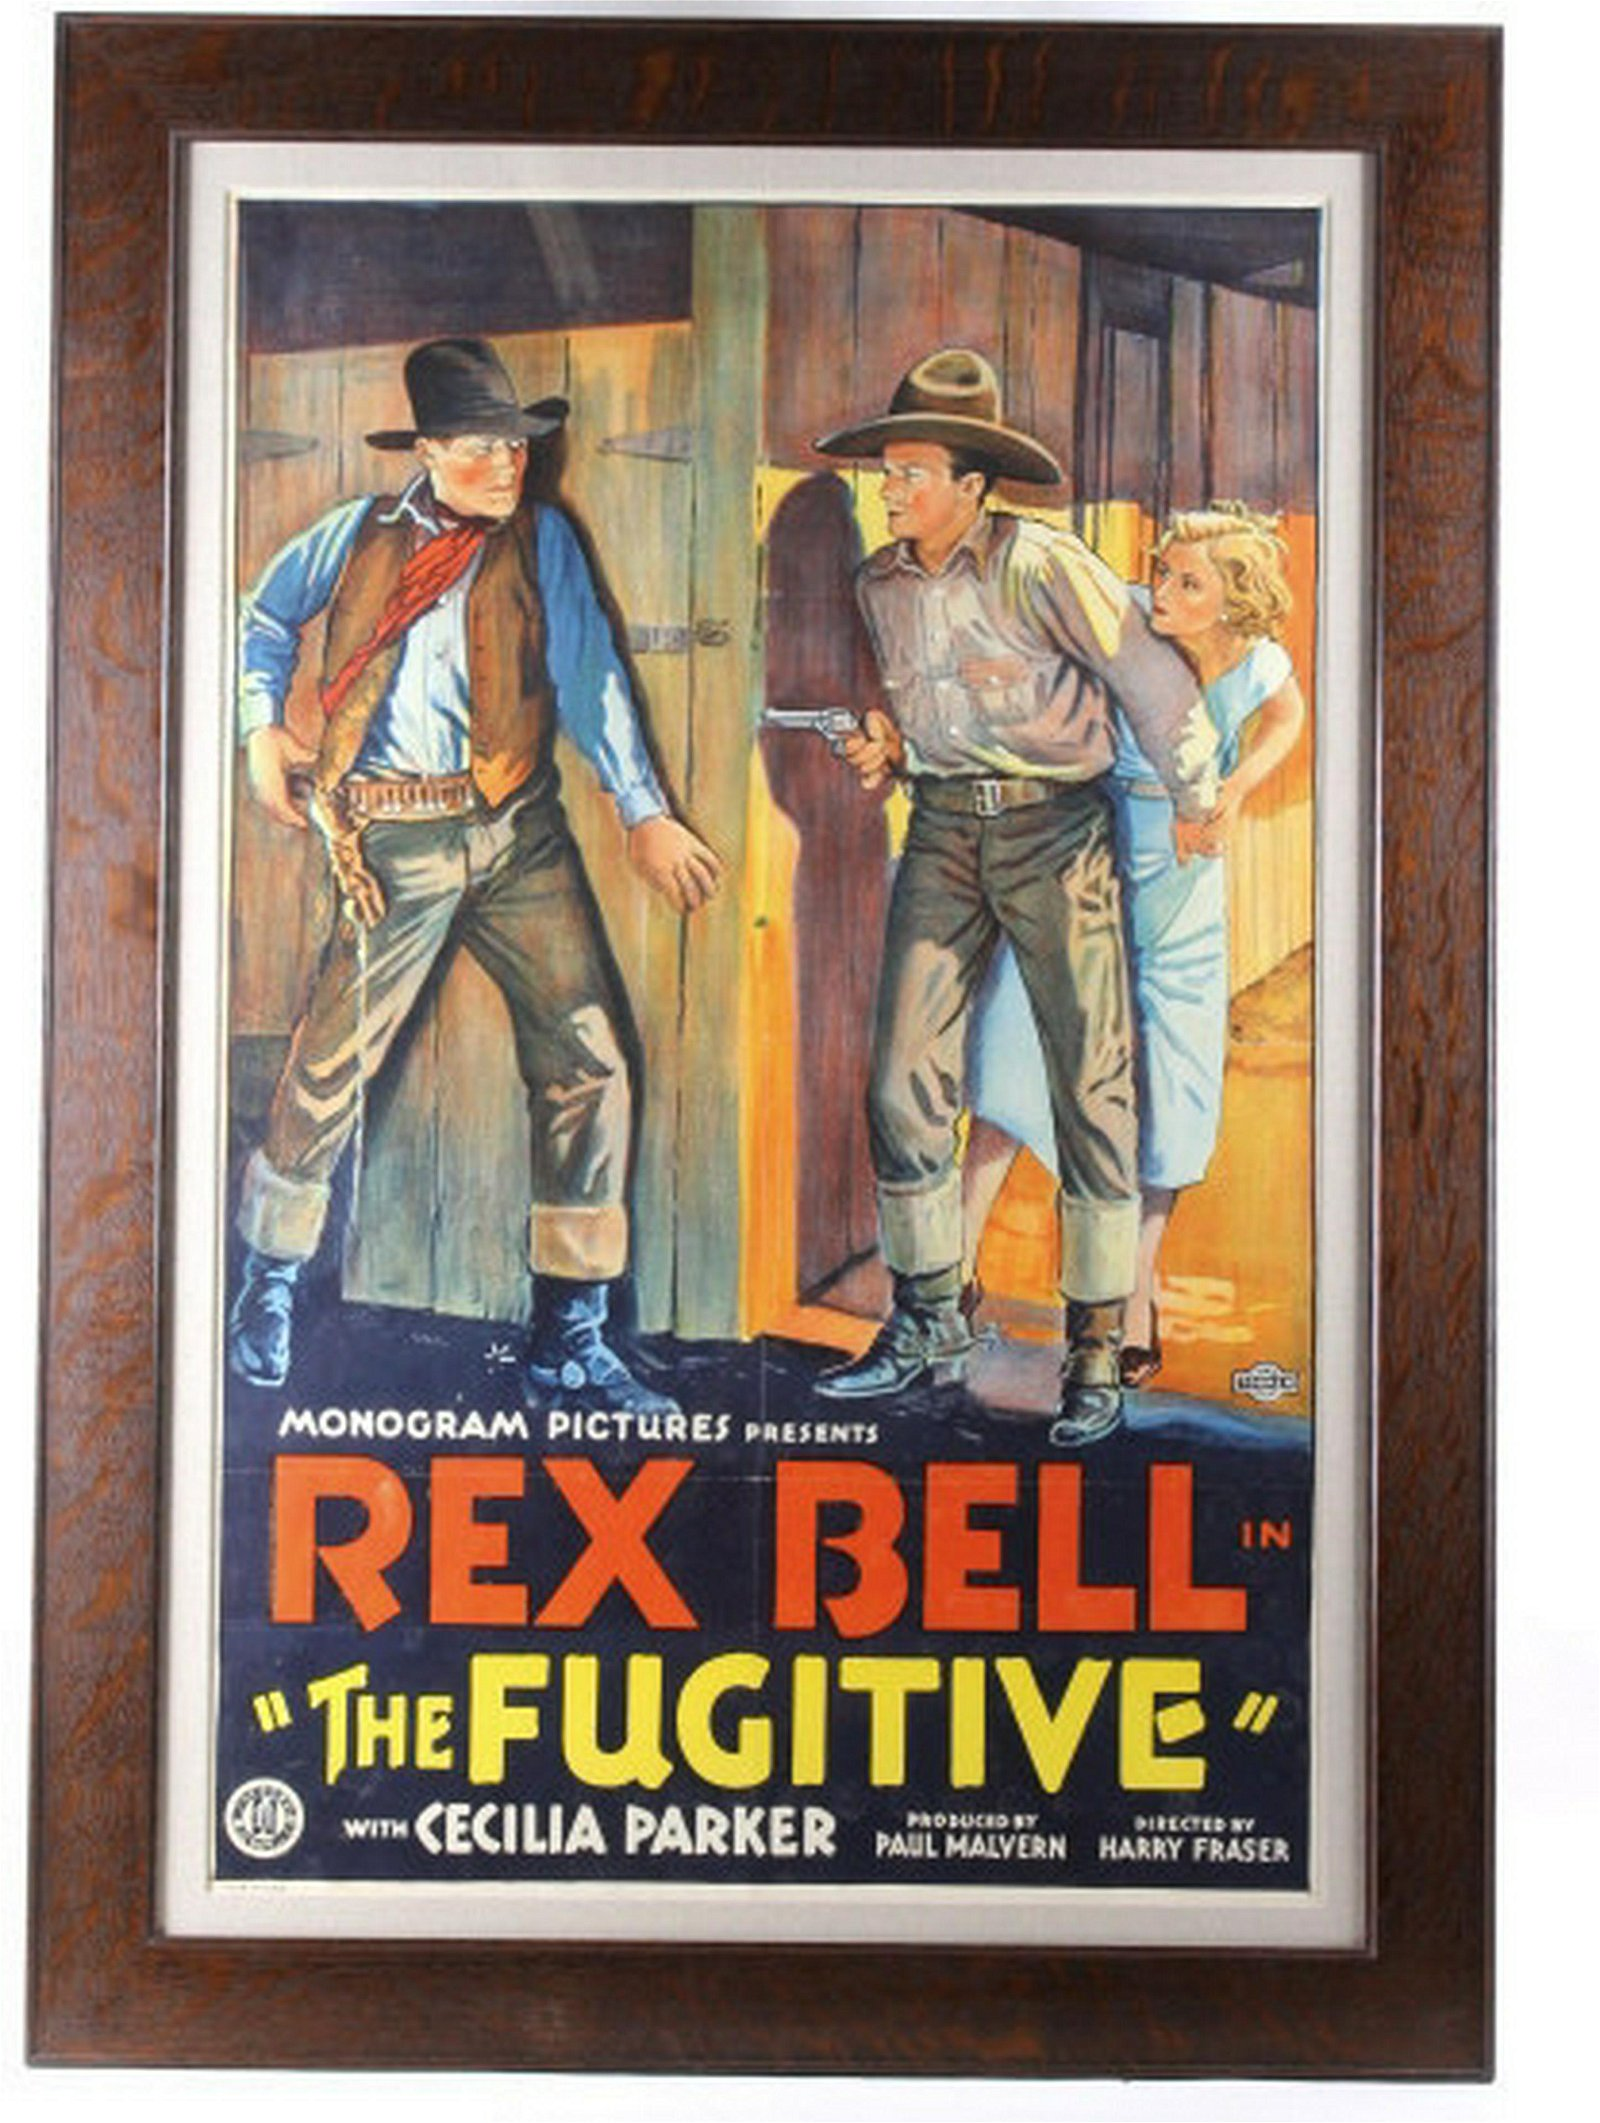 The Fugitive Western Movie Poster c. 1933 Rex Bell